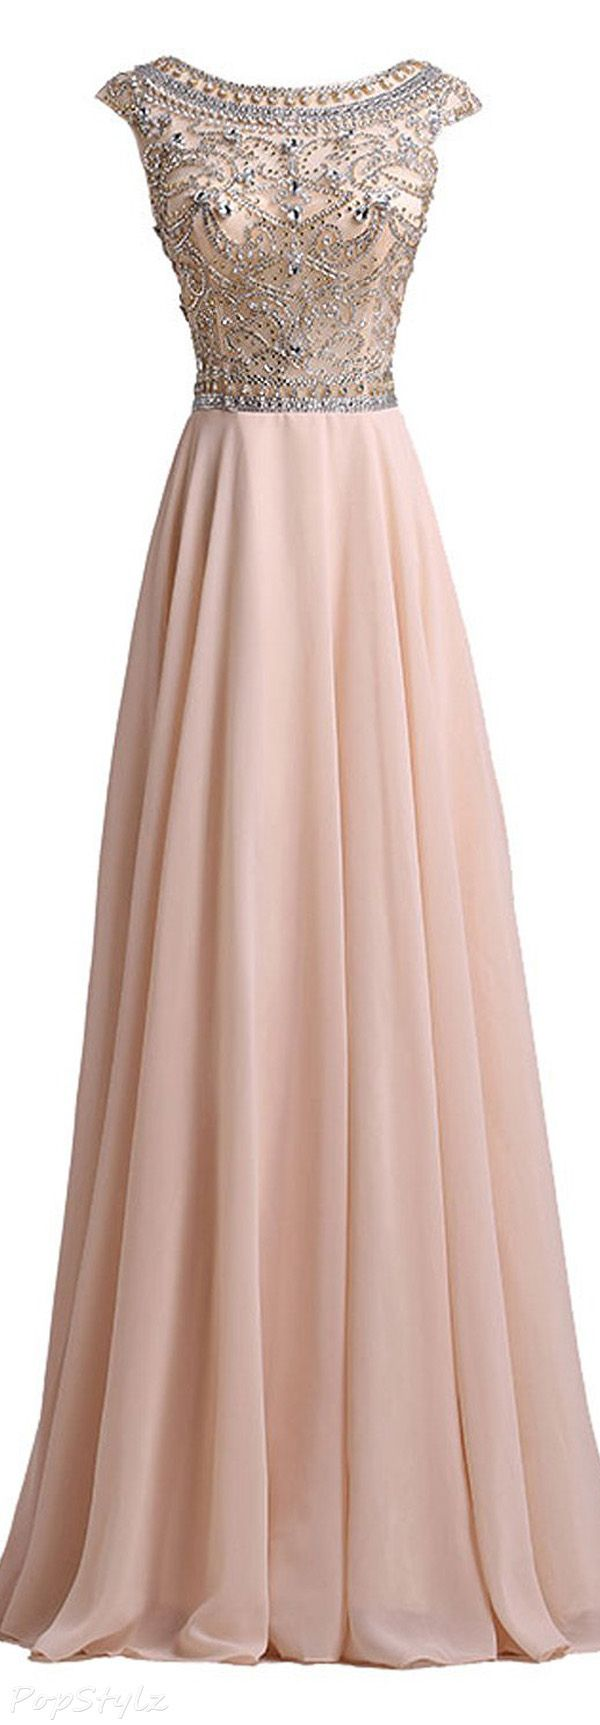 LovingDress Chiffon Tulle Long Evening Gown